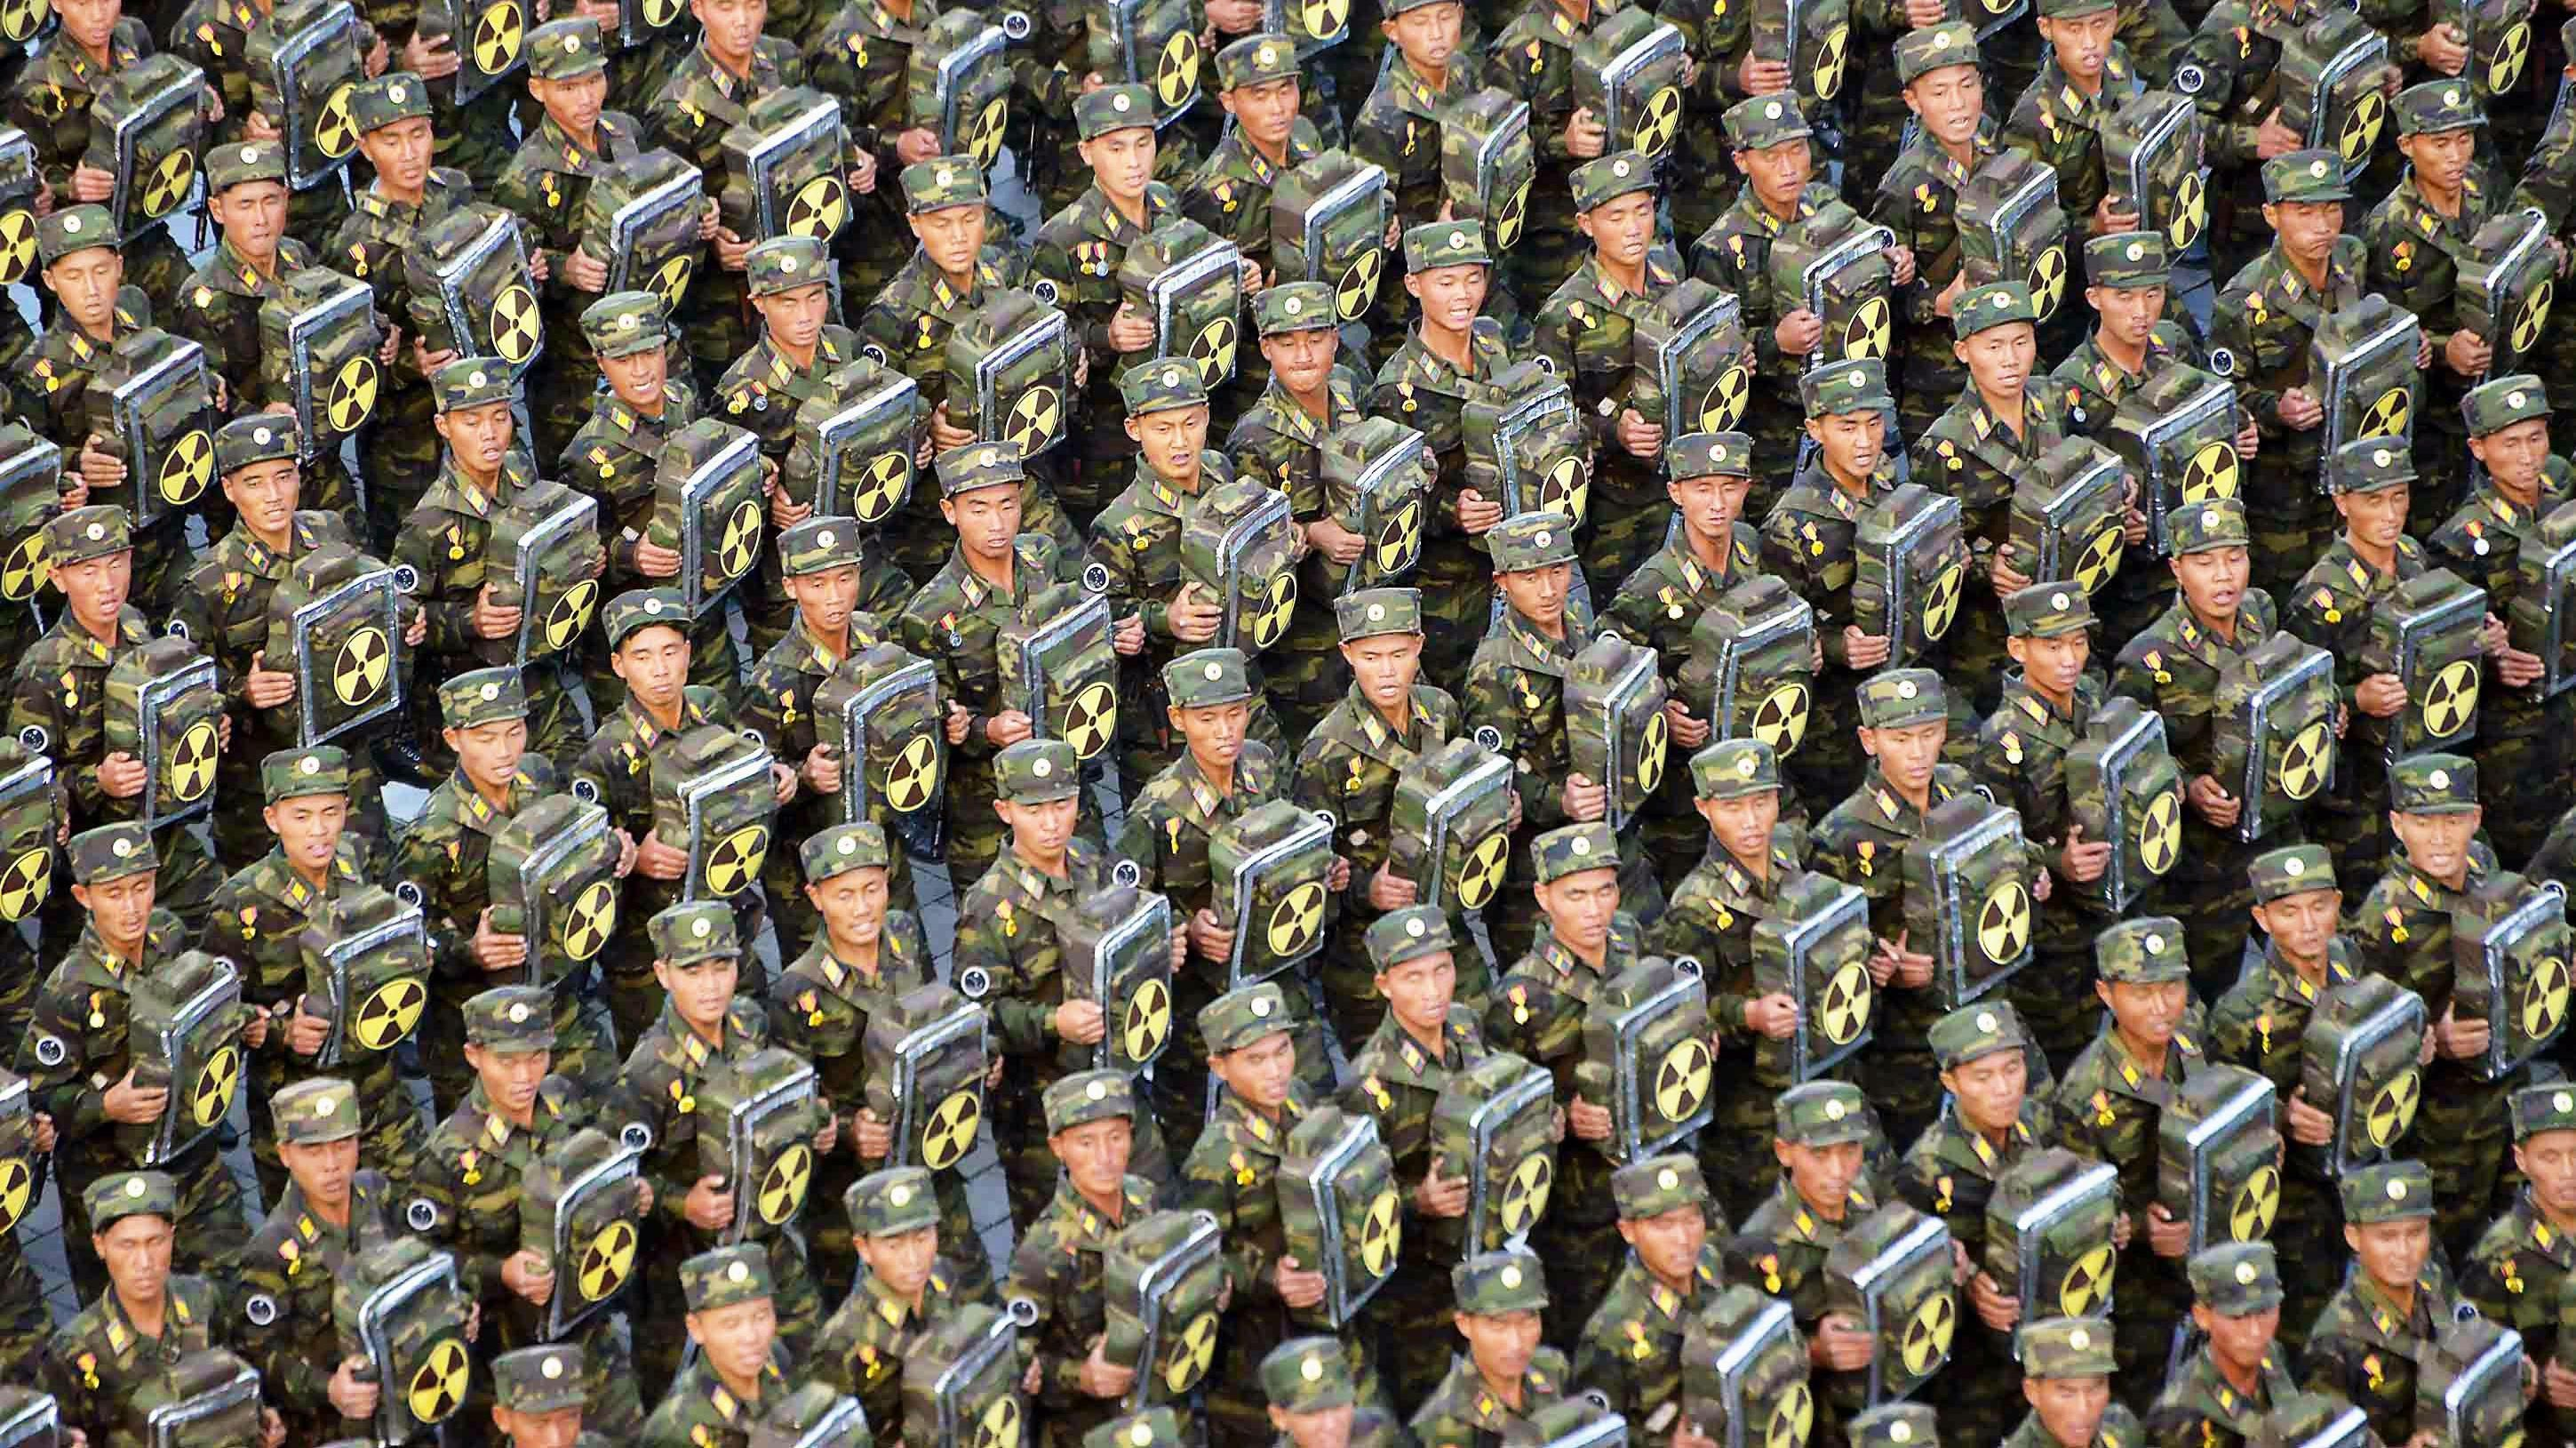 North korean army presenting backpacks with nuclear radiation north korean army presenting backpacks with nuclear radiation symbol 2899x1629 biocorpaavc Images